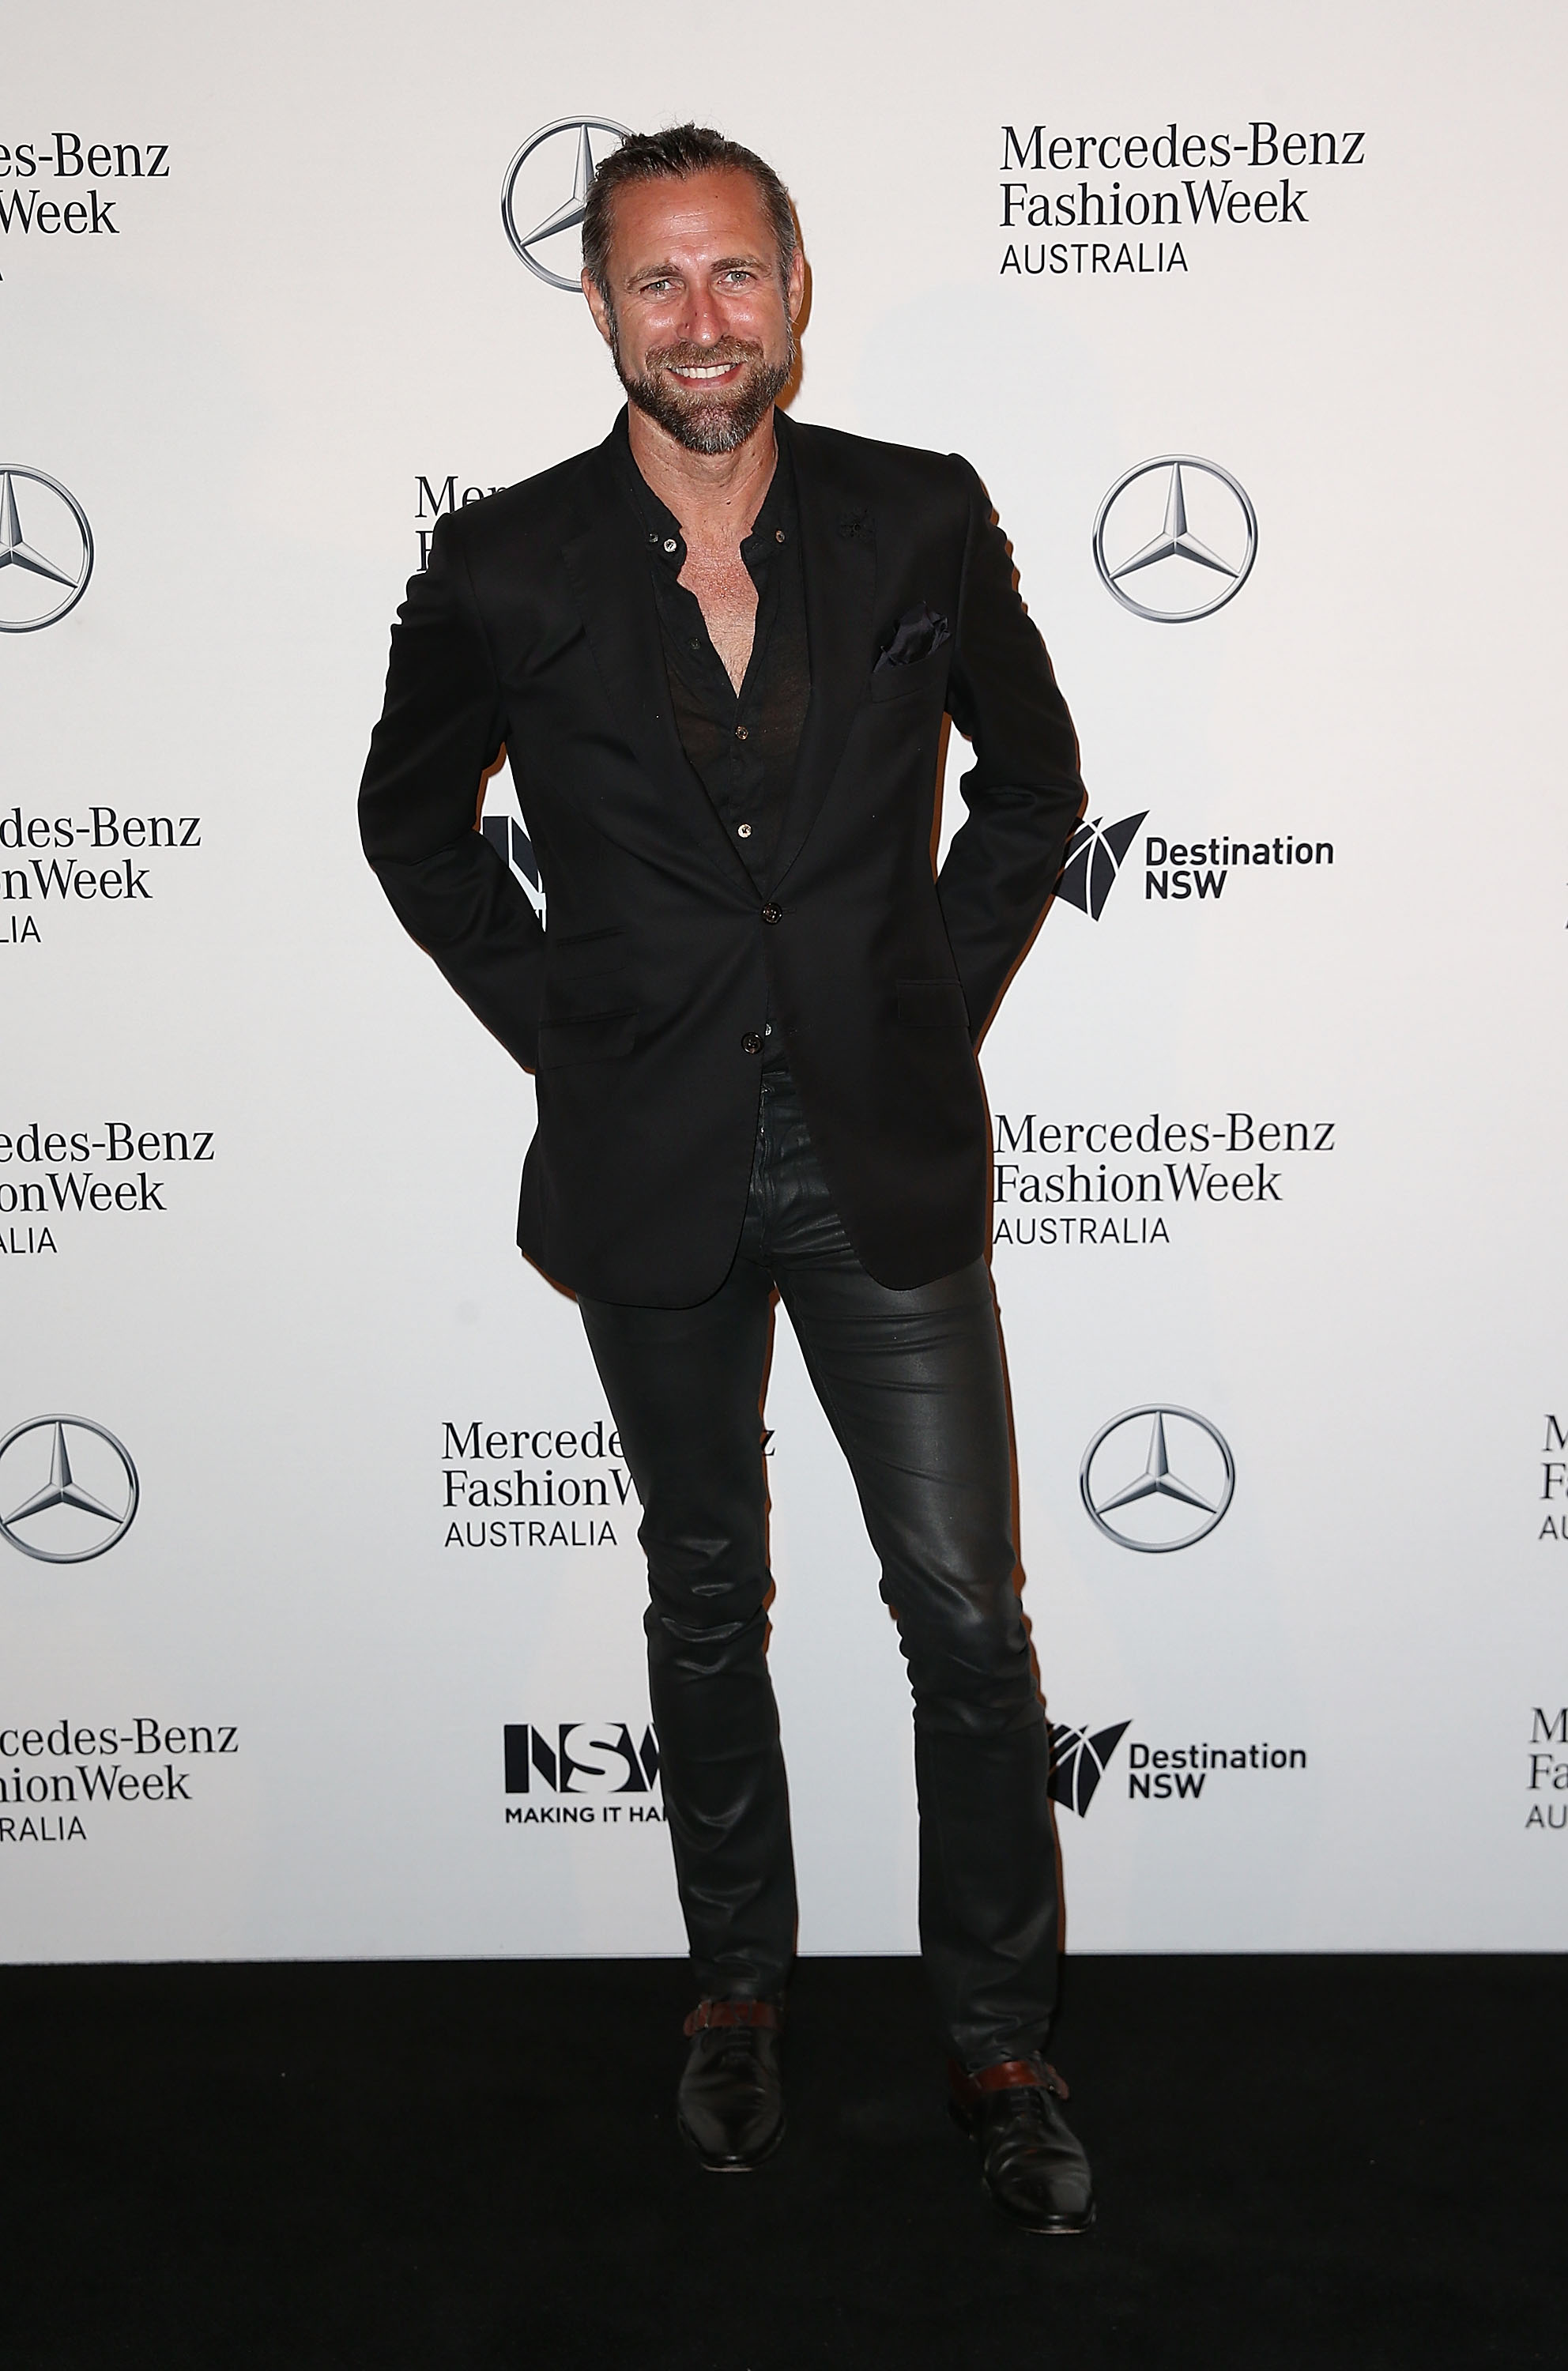 benz mercedes aw runway autumn berlin show report week winter ultimate baldessarini brilliance fashion men clothing de